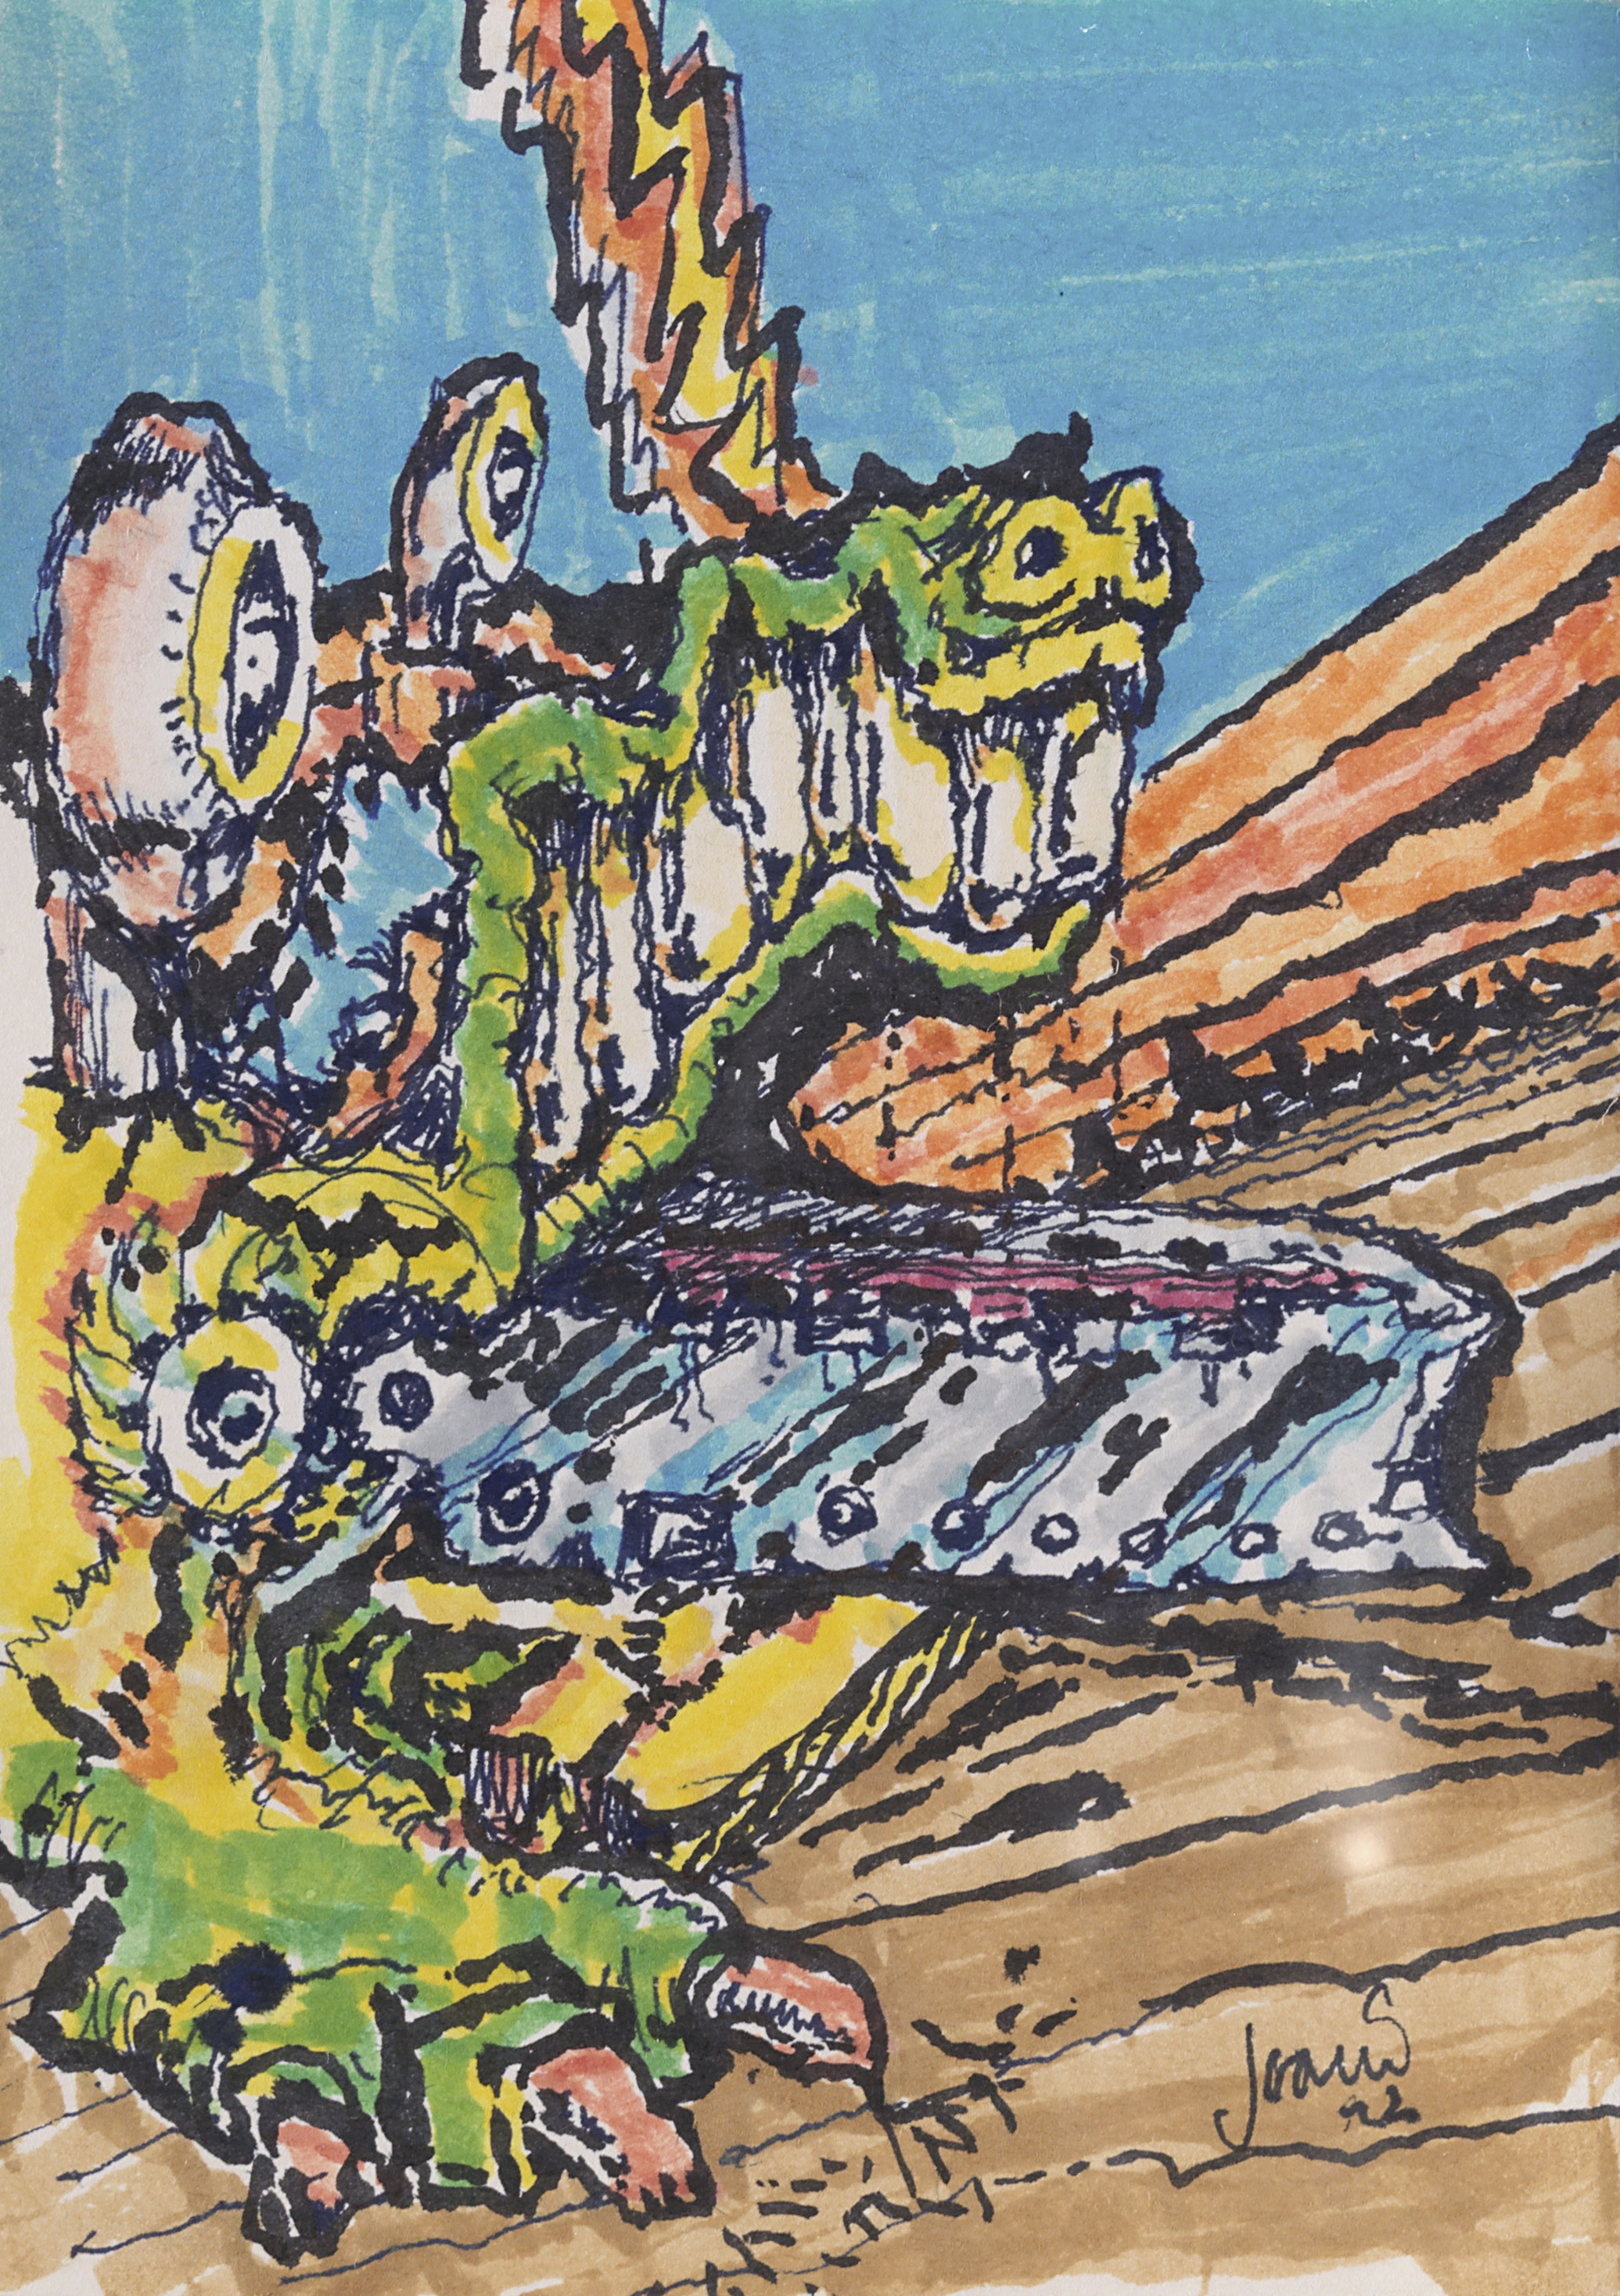 Lot 377 - A WATERCOLOR OF AN ALLIGATOR BY JERRY GARCIA 1992